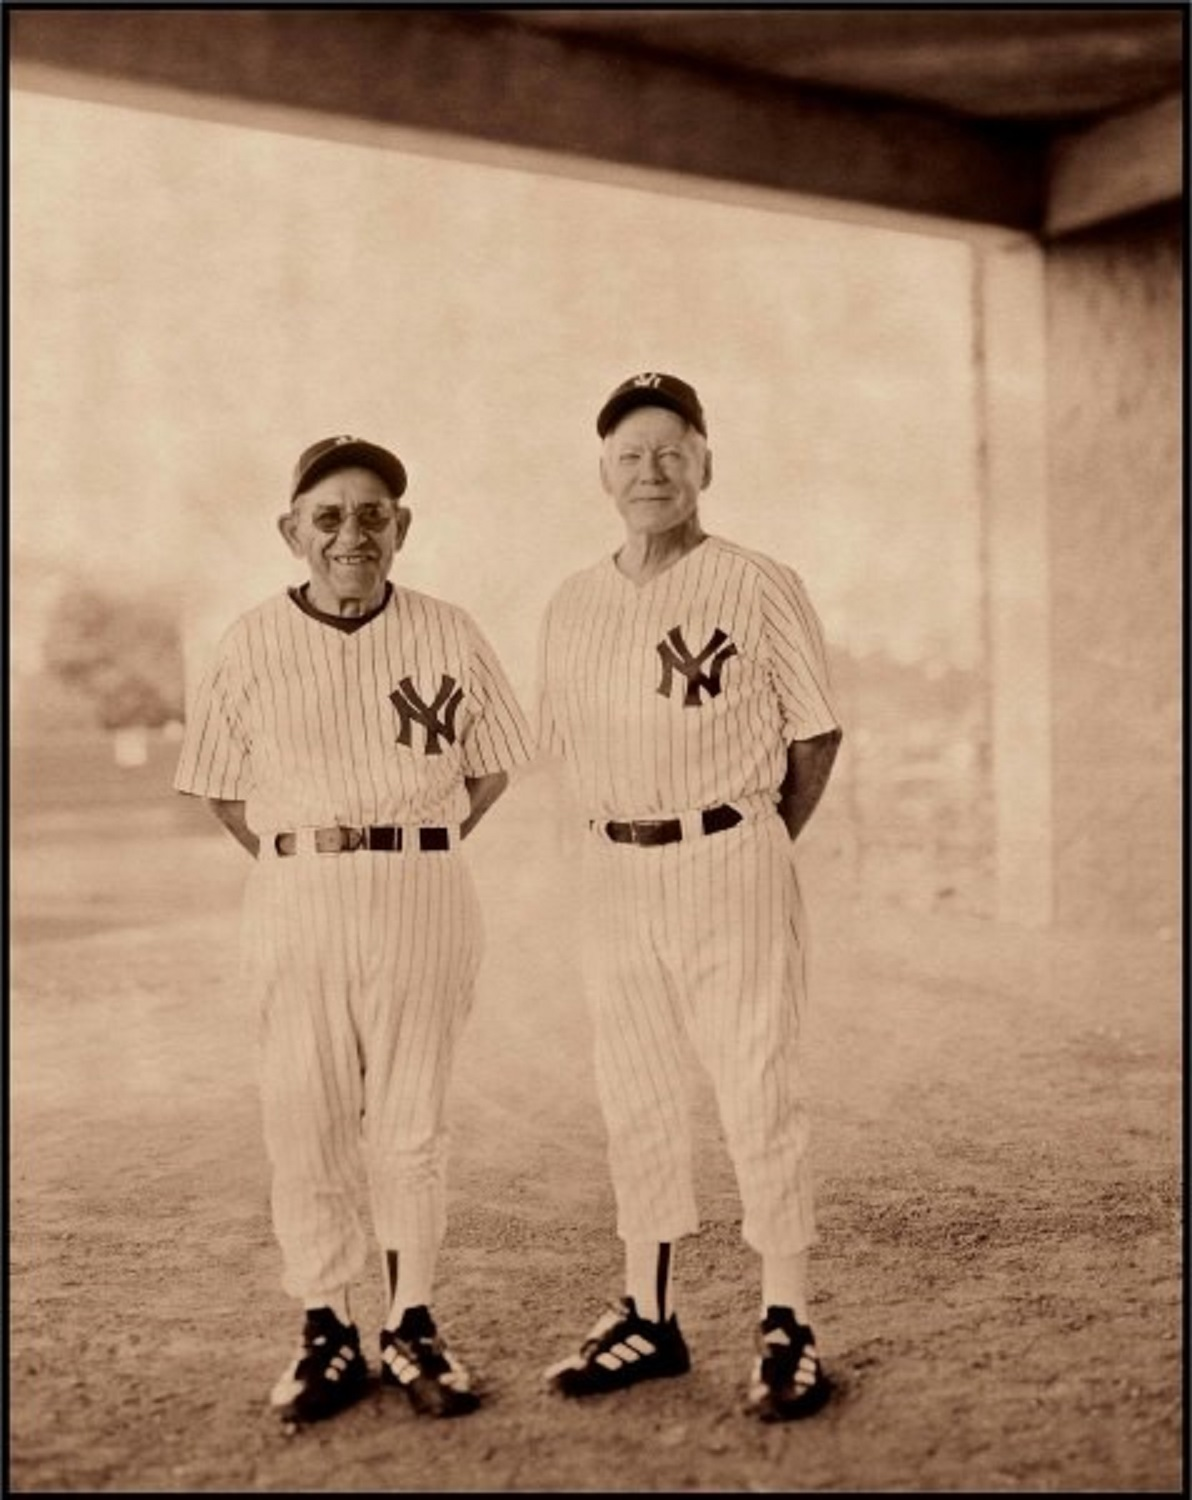 Yogi Berra and Whitey Ford, Tampa, FL, 1991, by Walter Iooss